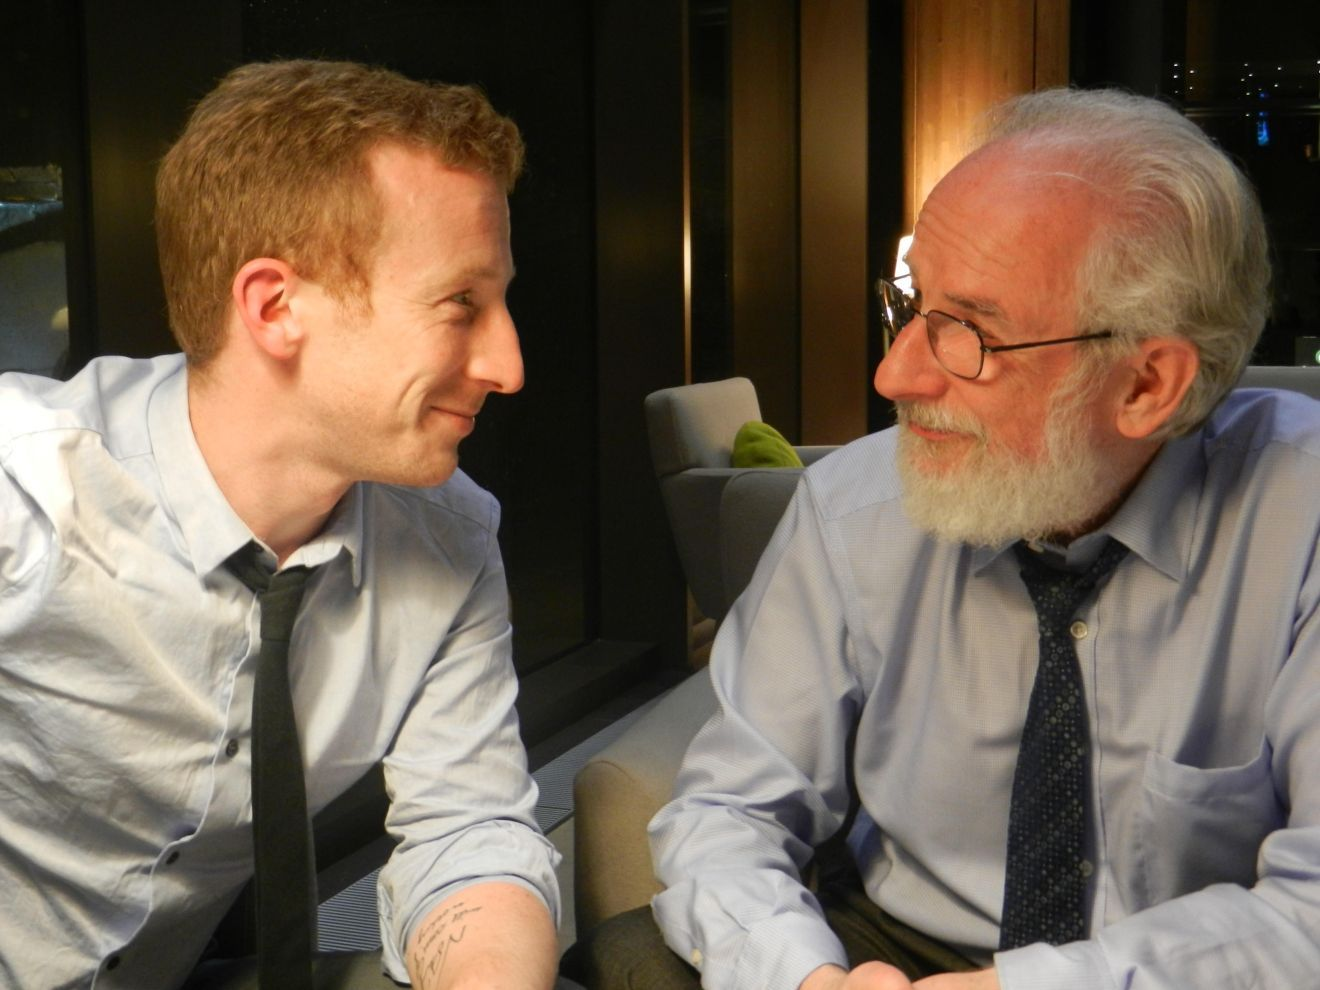 Ben and david crystal the language revolution podcast